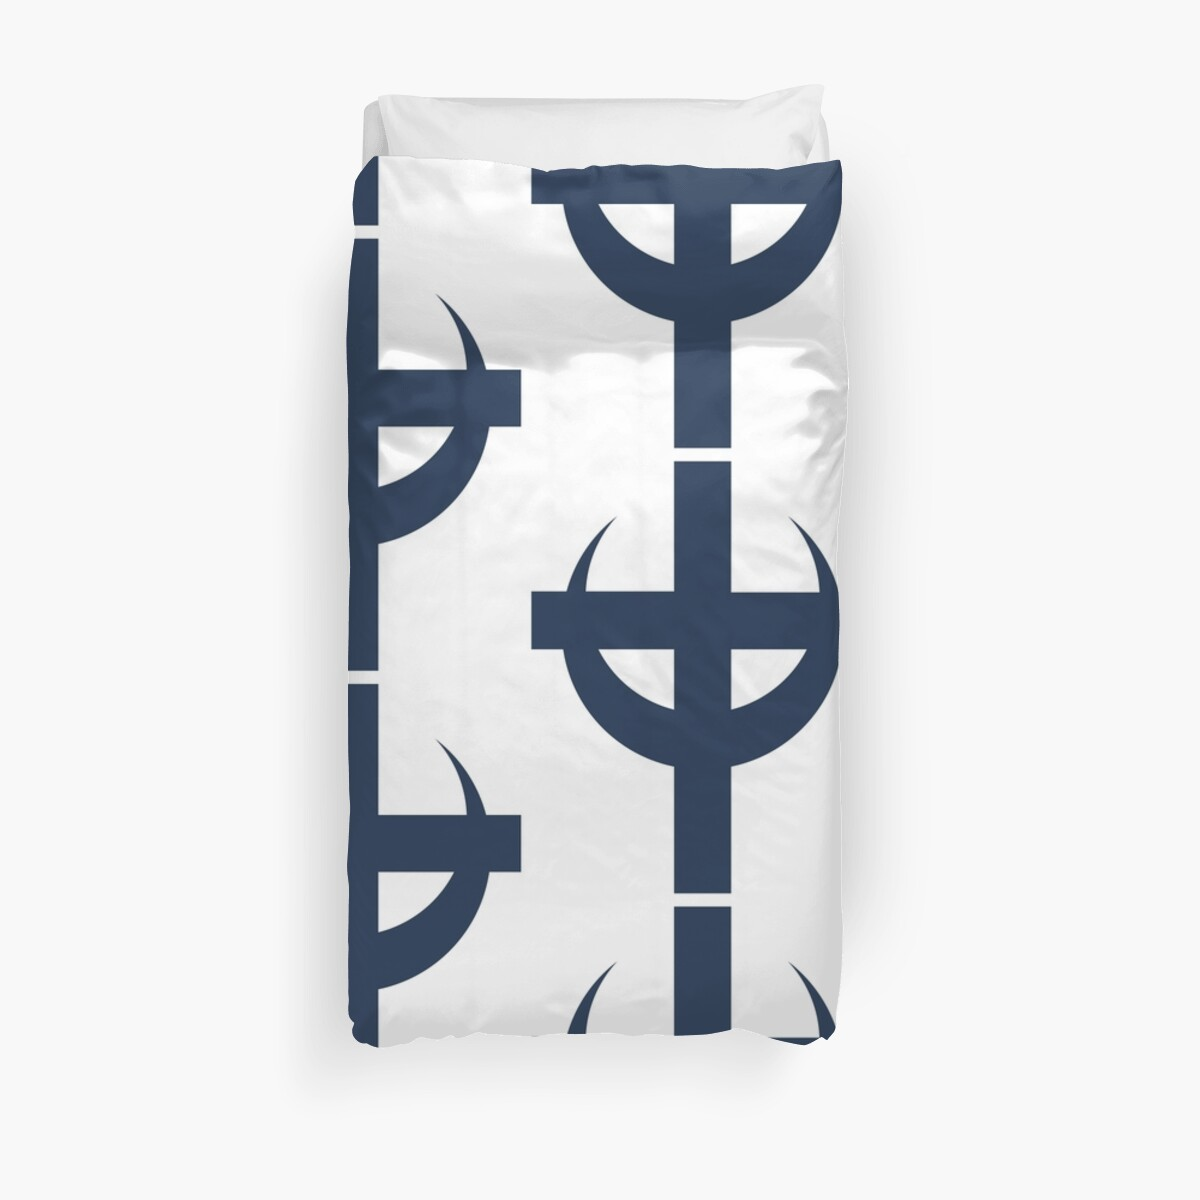 Fundas nórdicas «Tatuaje de Marco the Phoenix» de OwlBurger | Redbubble